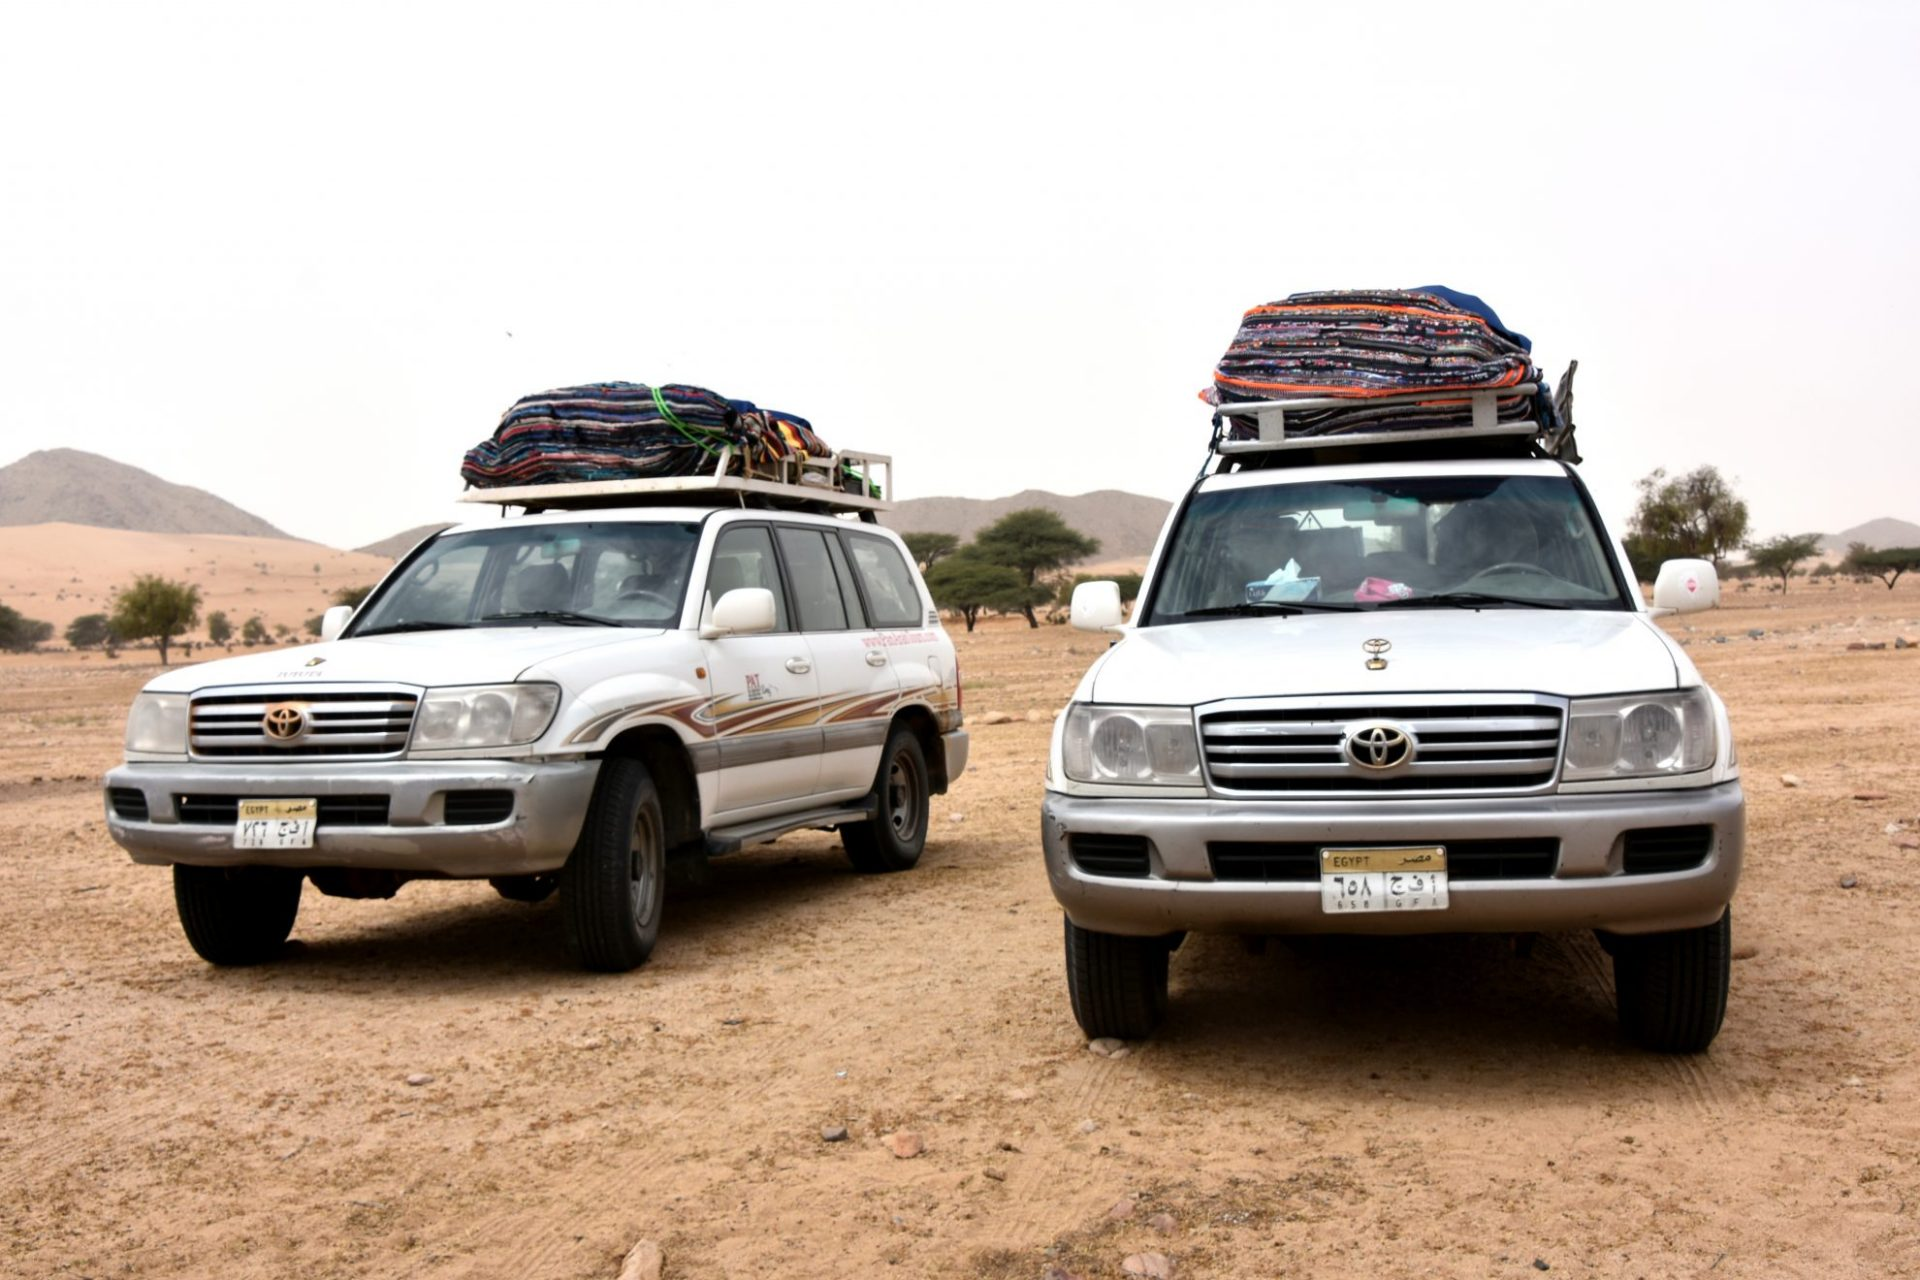 Jeeps parked in the Eastern Desert of Marsa Alam Egypt